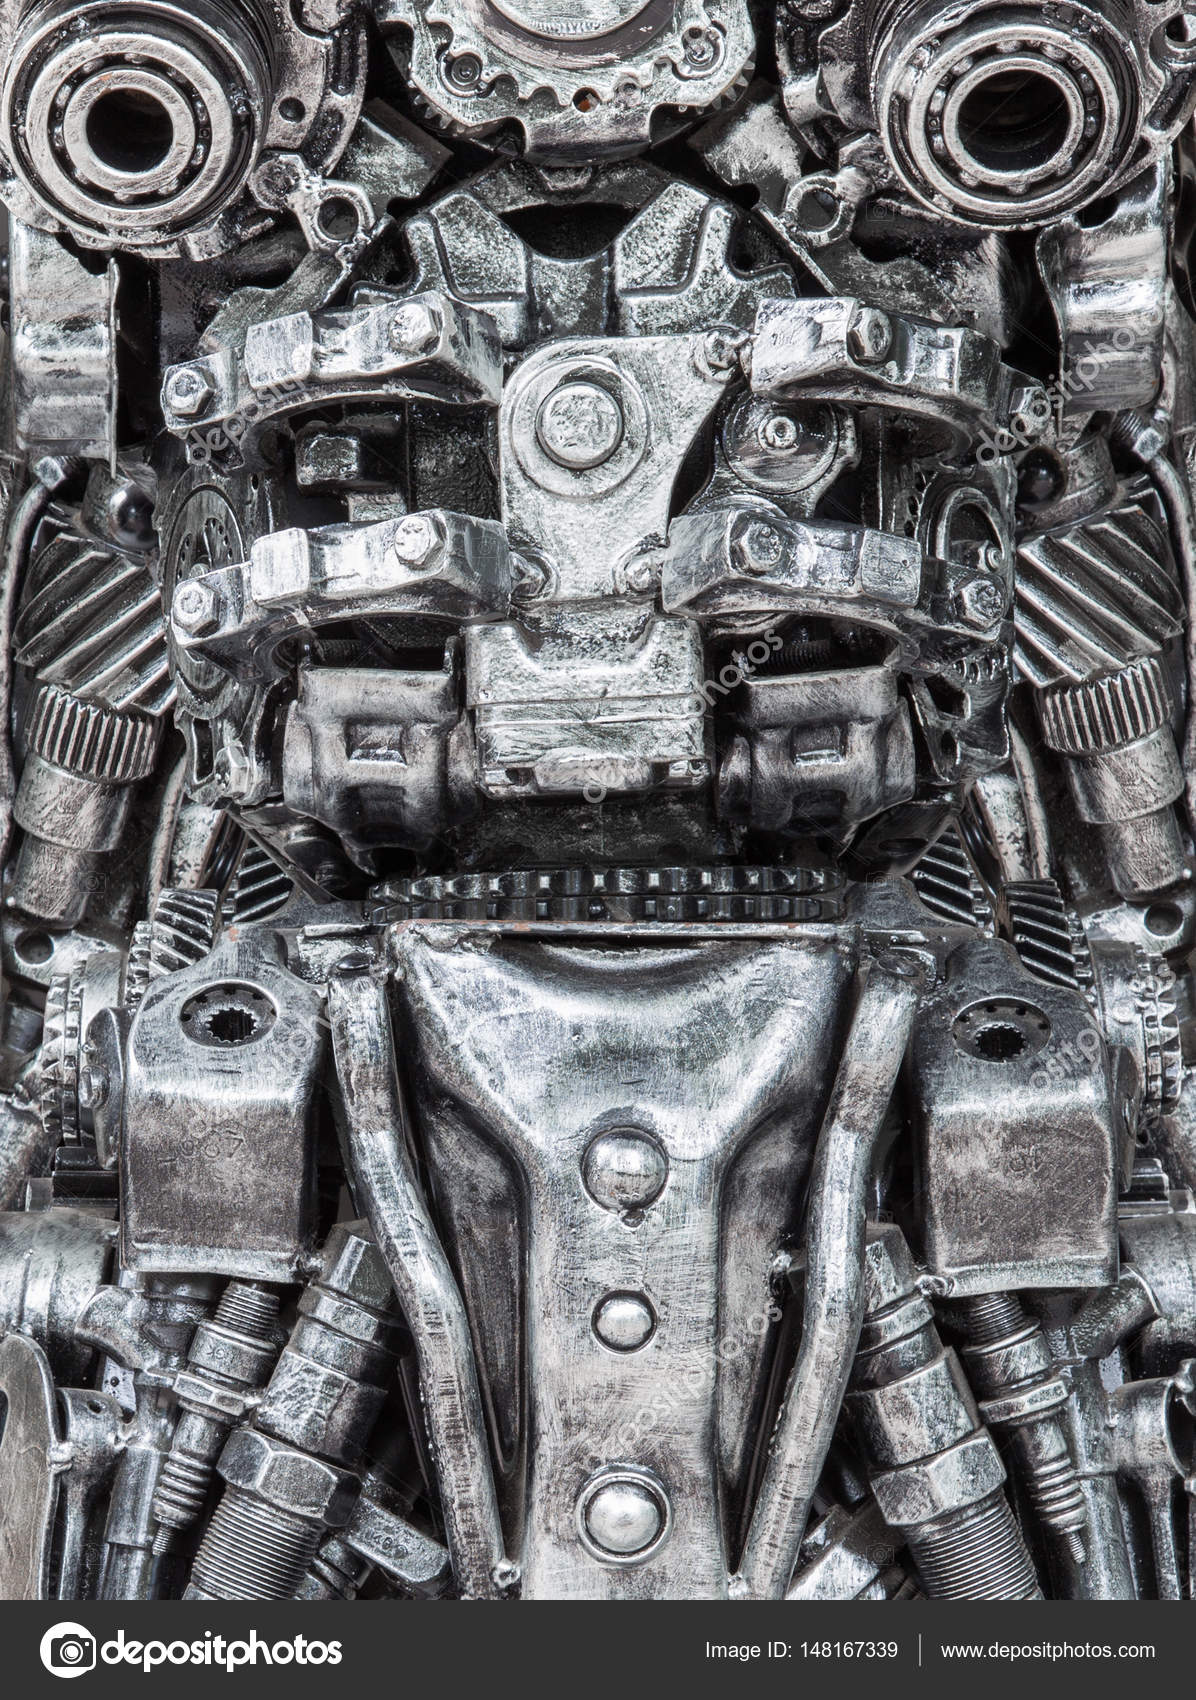 Closeup Body Of Metallic Robot Made From Auto Parts With